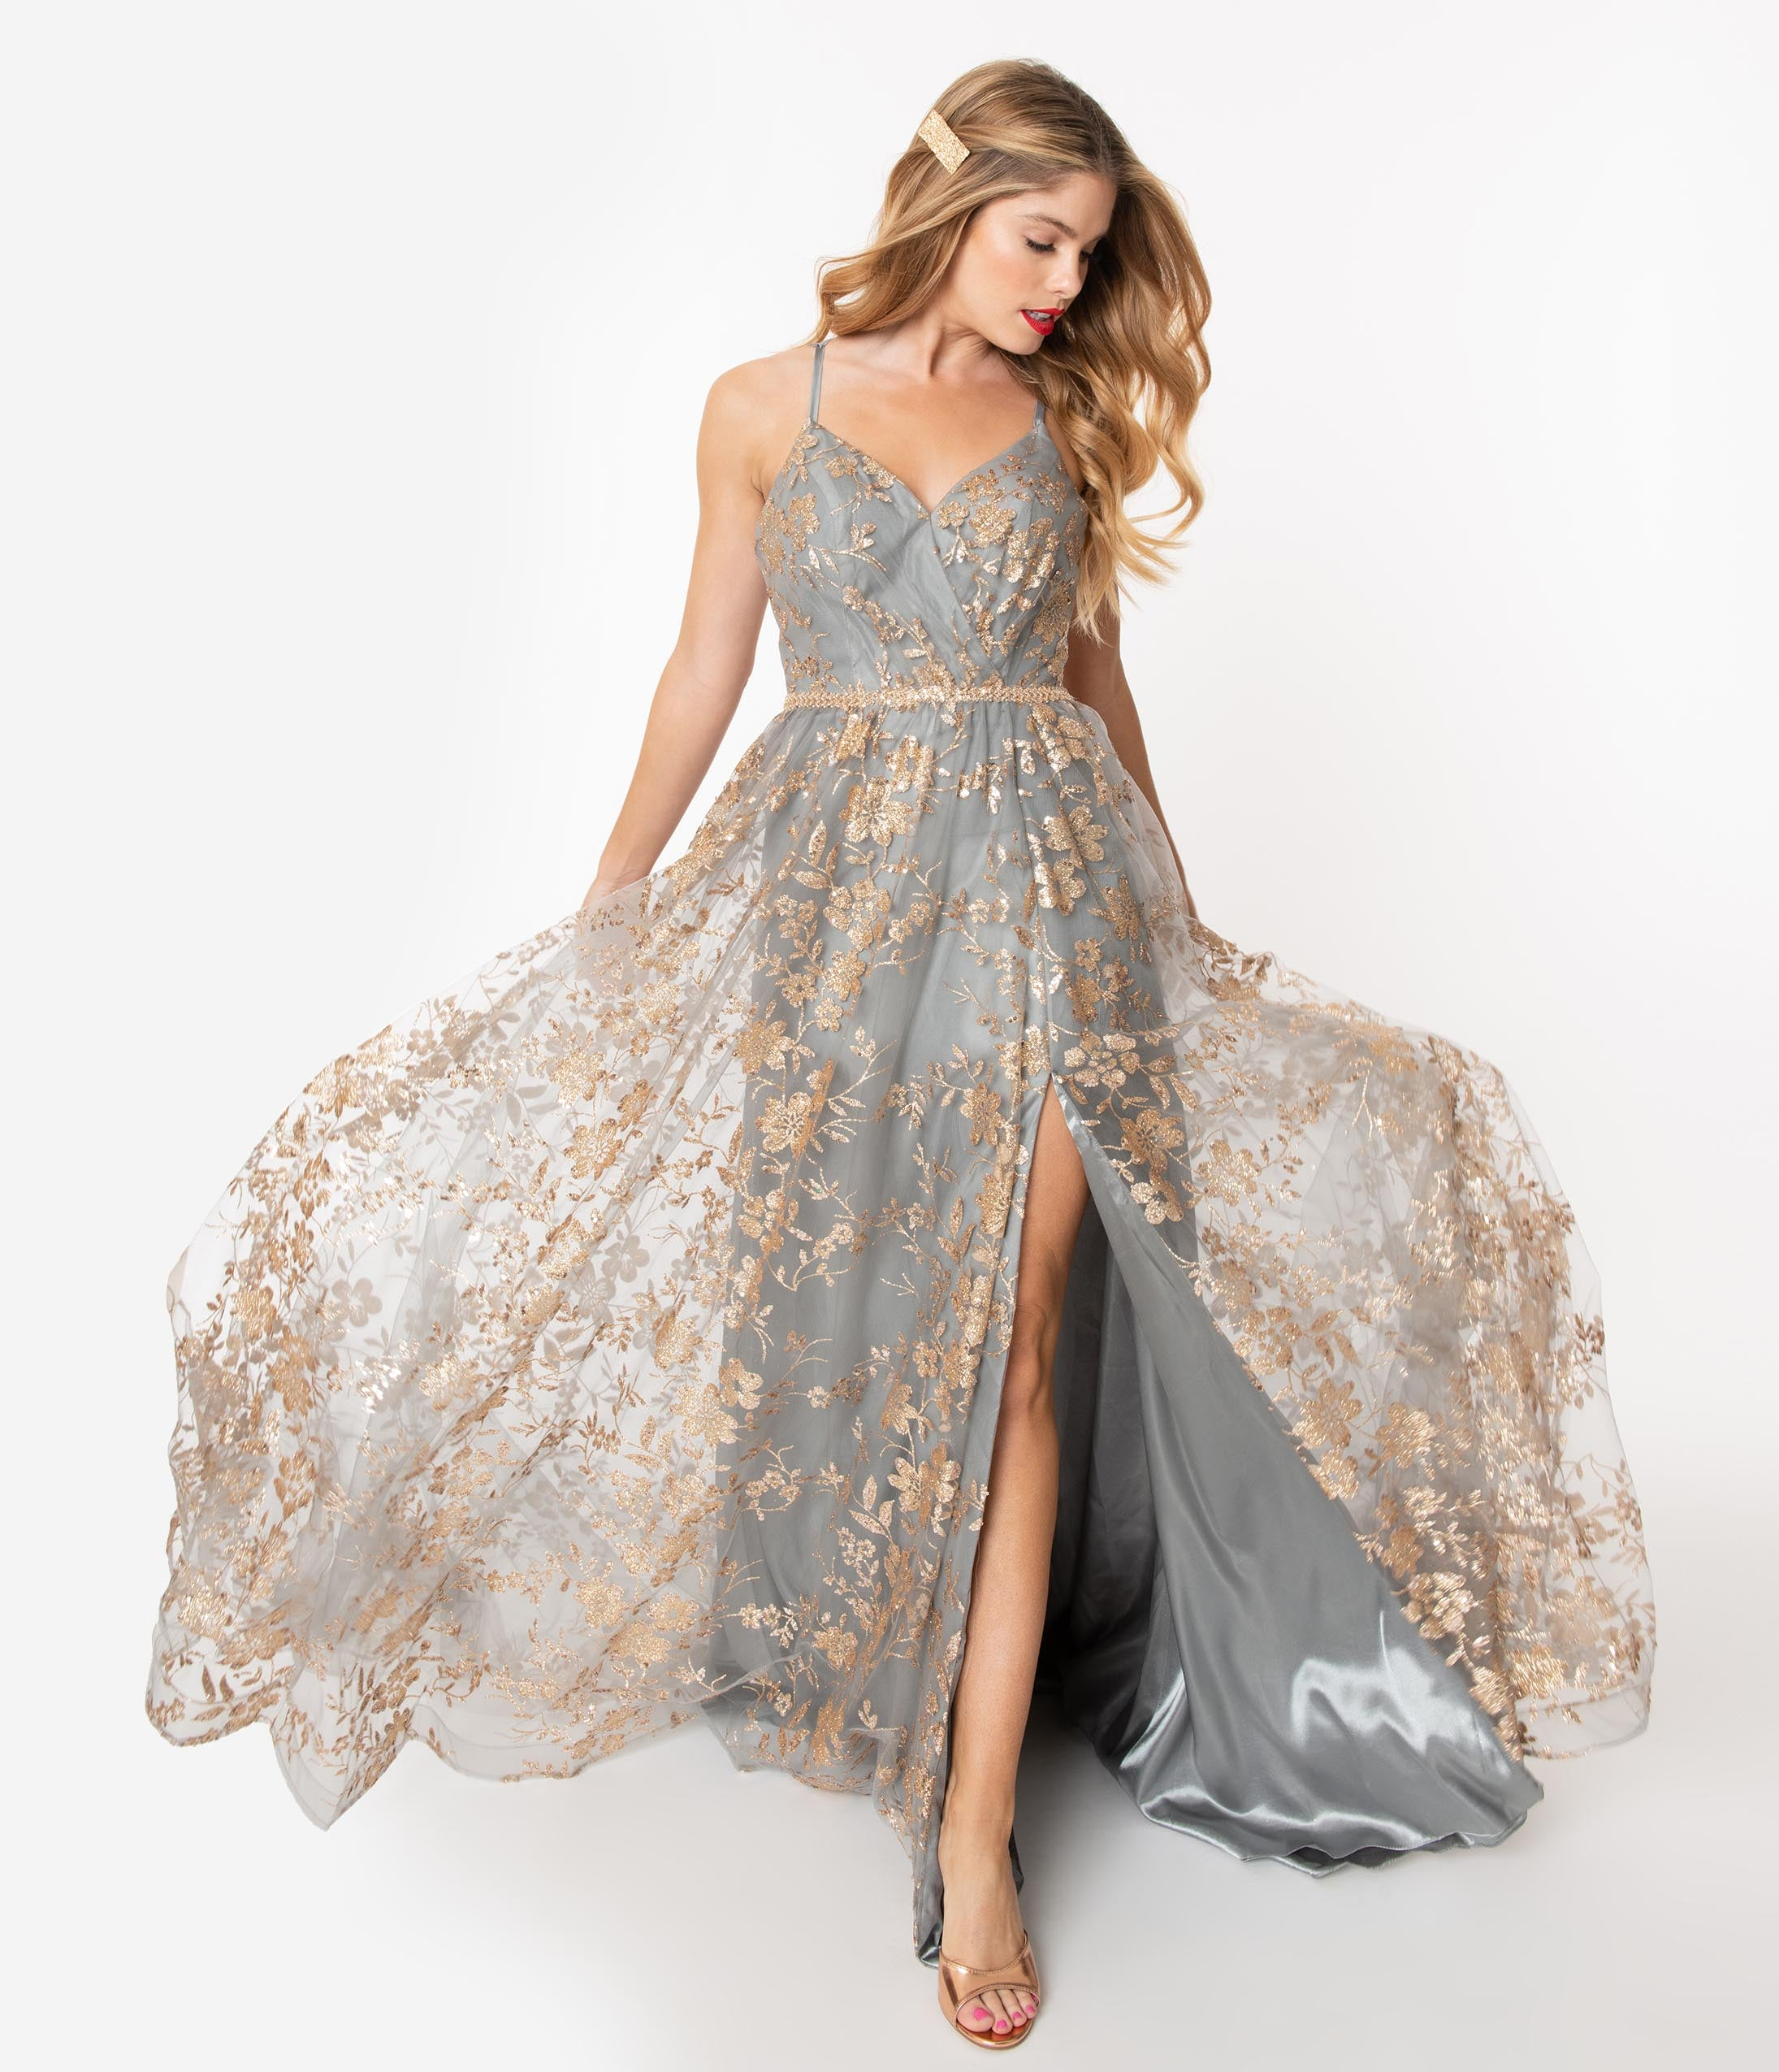 1950s History of Prom, Party, and Formal Dresses Charcoal Grey  Gold Floral Sparkle Gown $188.00 AT vintagedancer.com